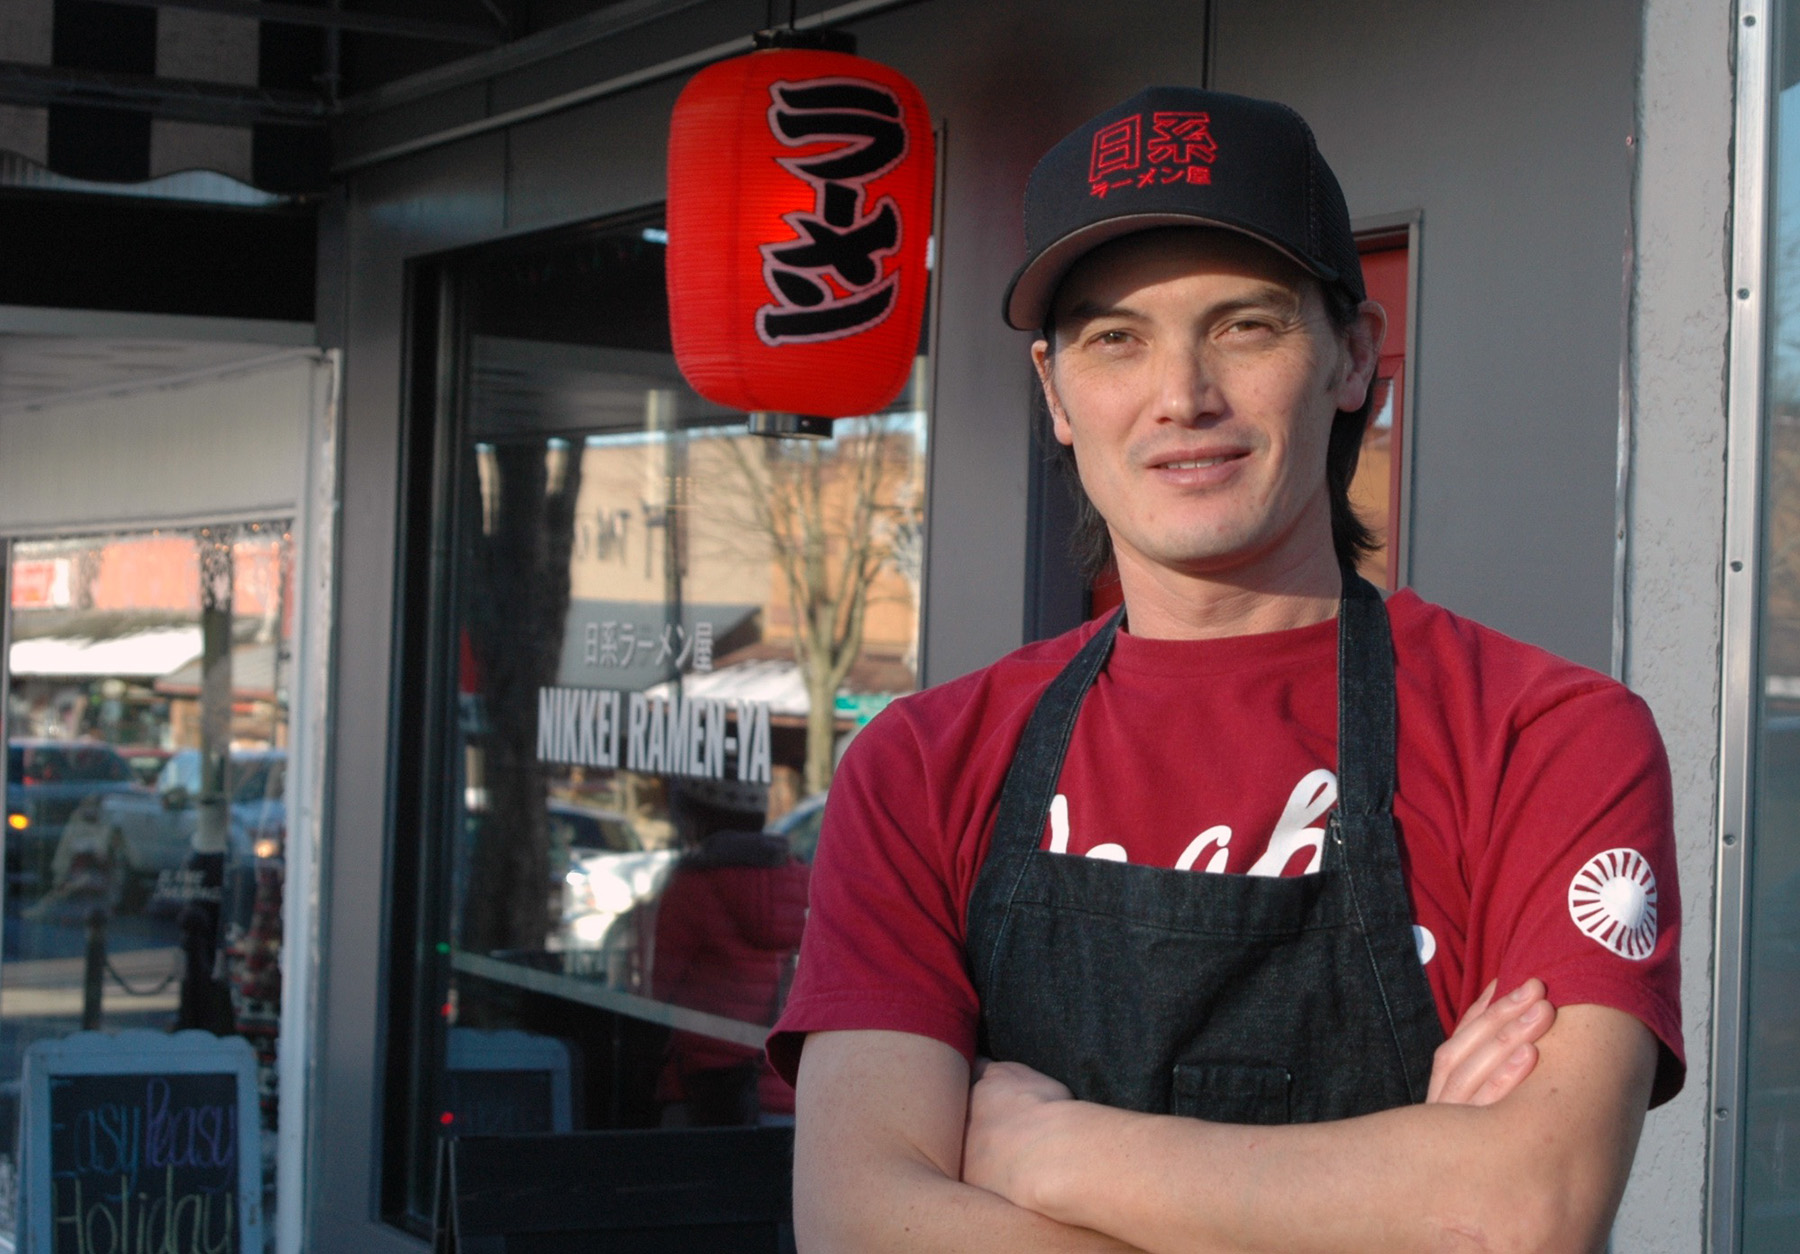 Greg Masuda, Co-owner Of The Nikkei Ramen-Ya On Fifth Street, Is Just One Of Several New Business Owners Injecting An Urban Vibe Into Downtown Courtenay.